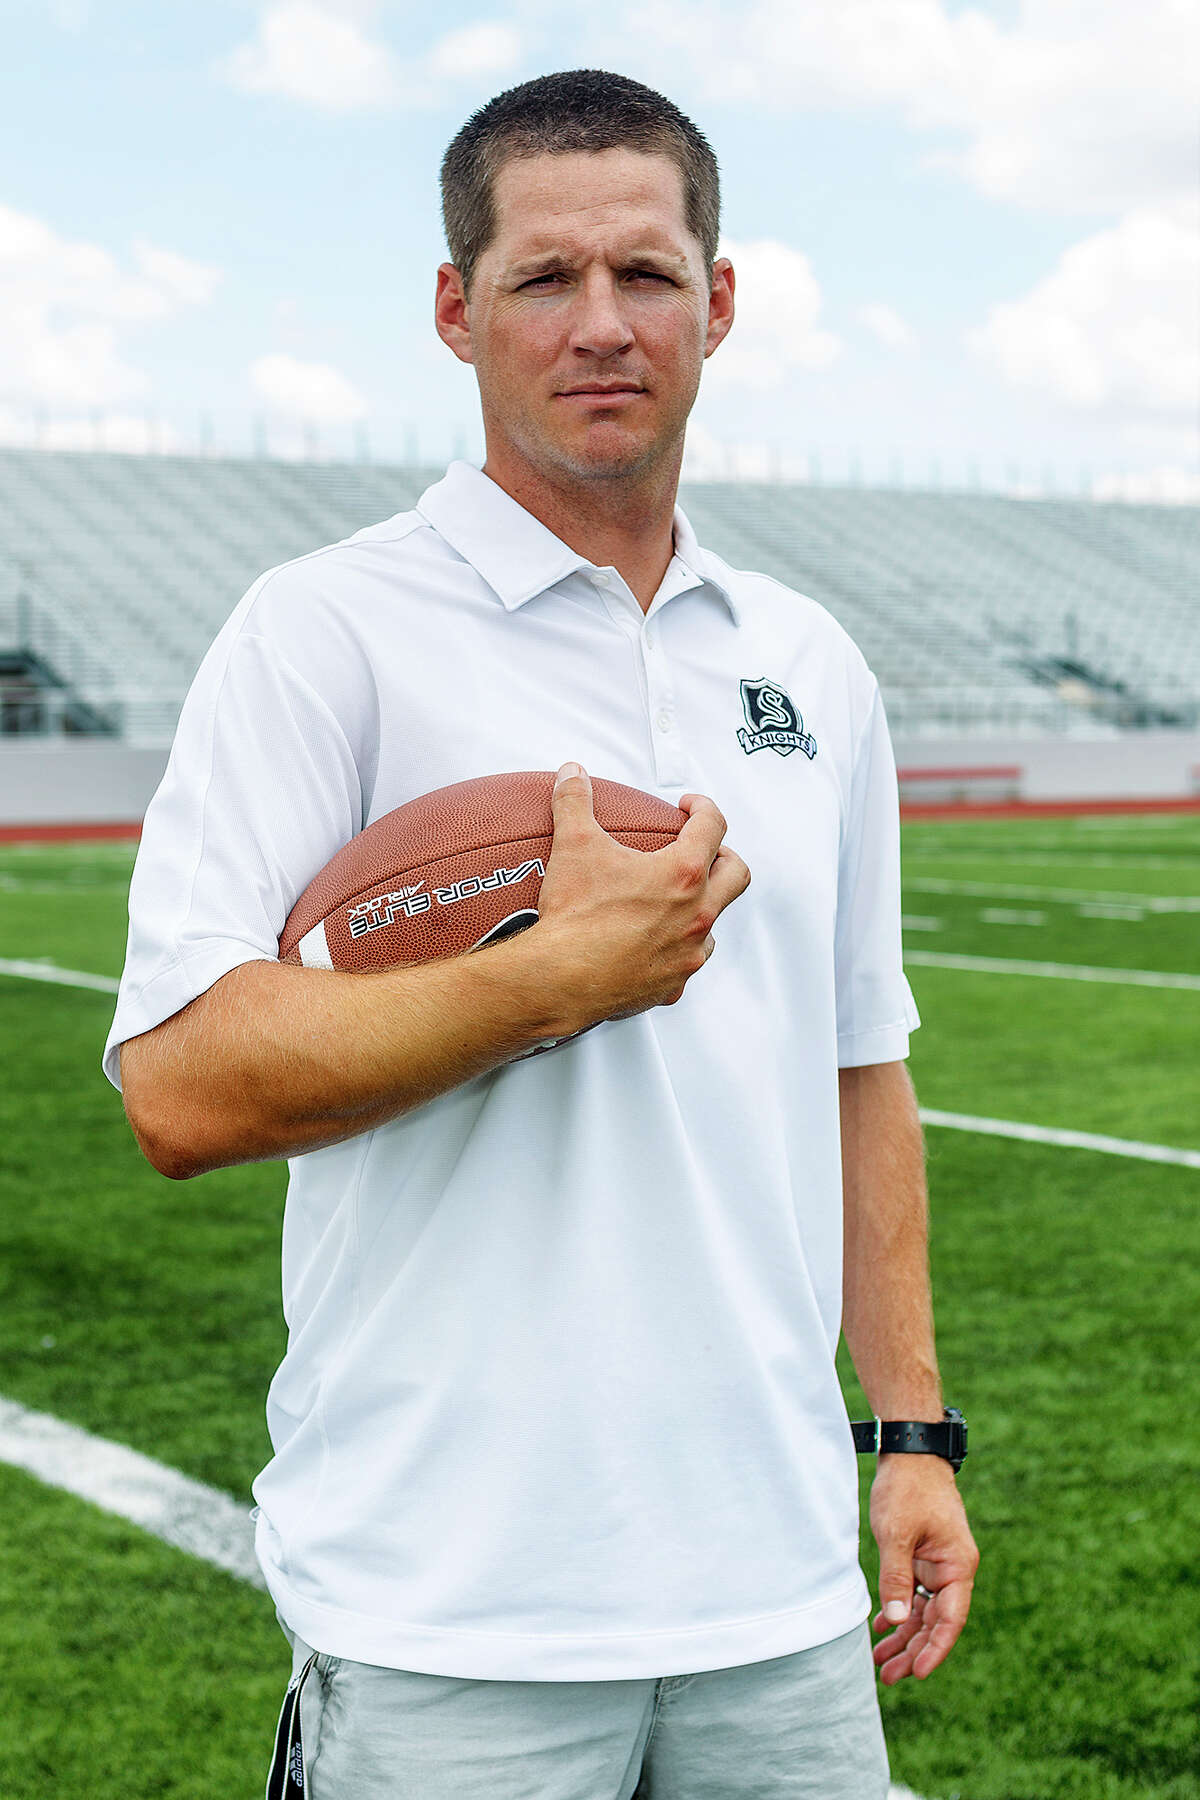 Scott Lehnhoff, the new head football coach at Steele High School, at Rutledge Stadium on Monday, Aug. 12, 2013. Lehnhoff replaces Mike Jinks who left to coach running backs at Texas Tech. Photo by Marvin Pfeiffer / Prime Time Newspapers